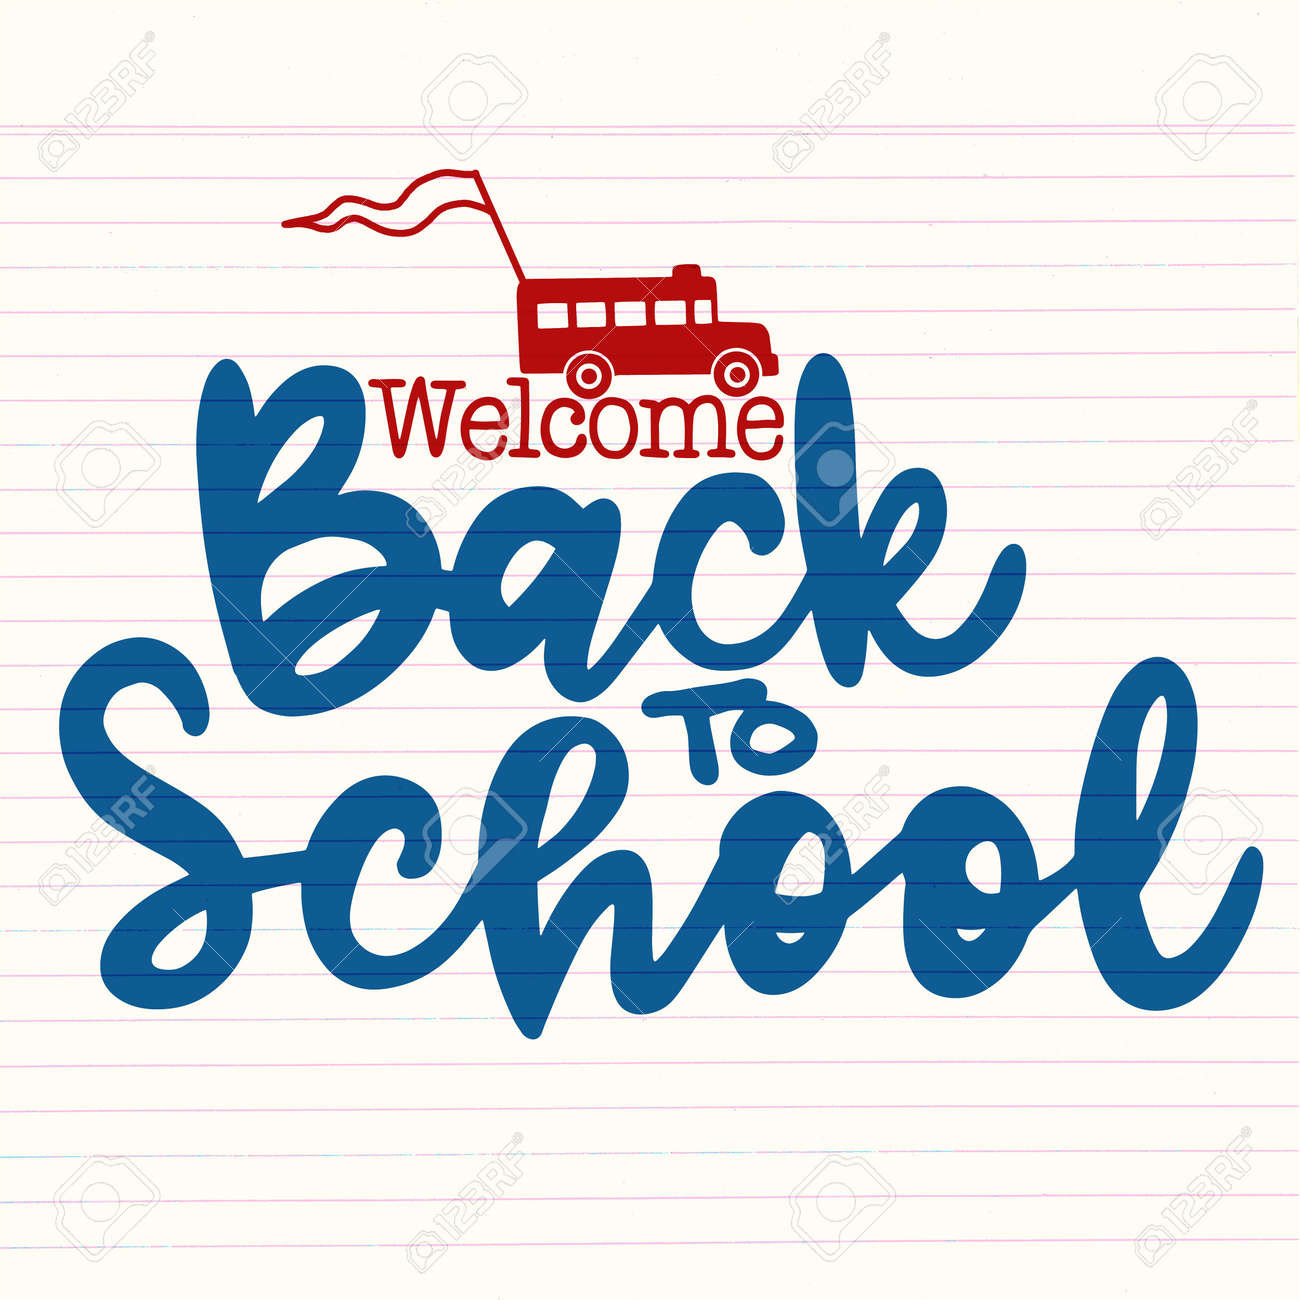 Welcome Back To School Hand Brush Lettering Doodle Or Hand Drawn